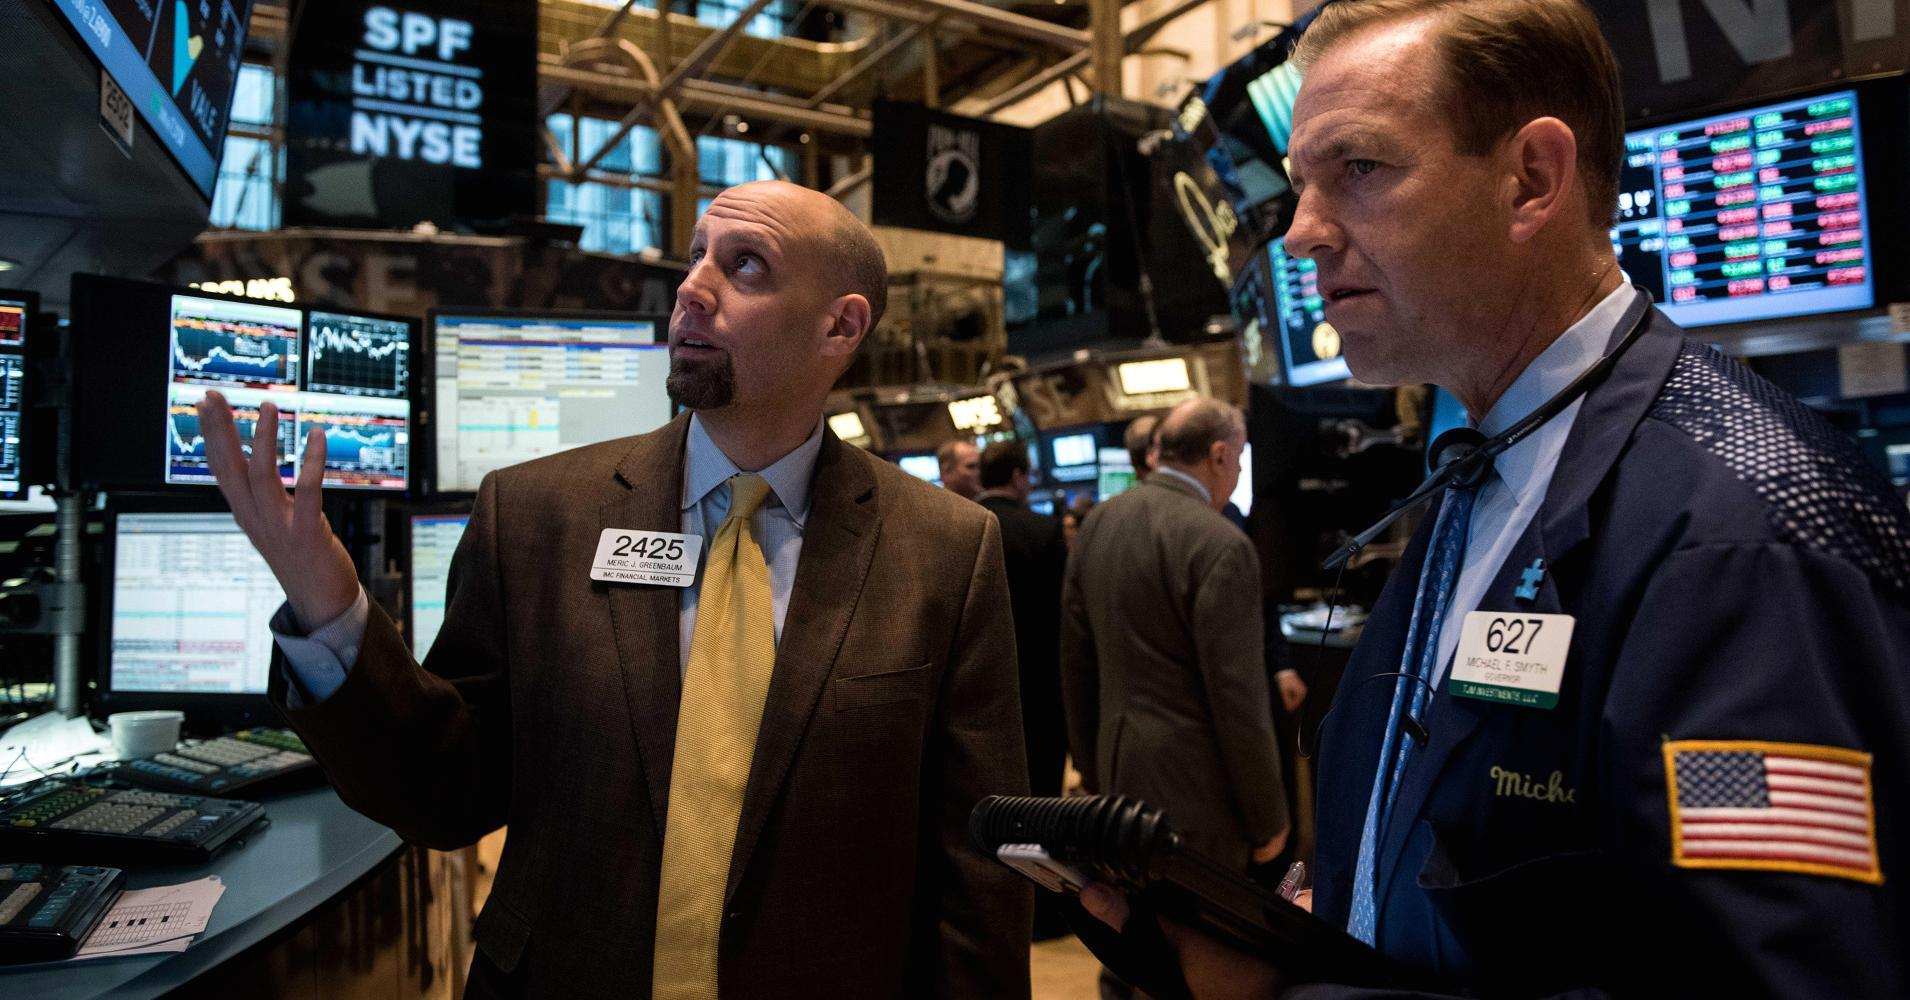 Stocks end lower as Greece weighs, transports lag